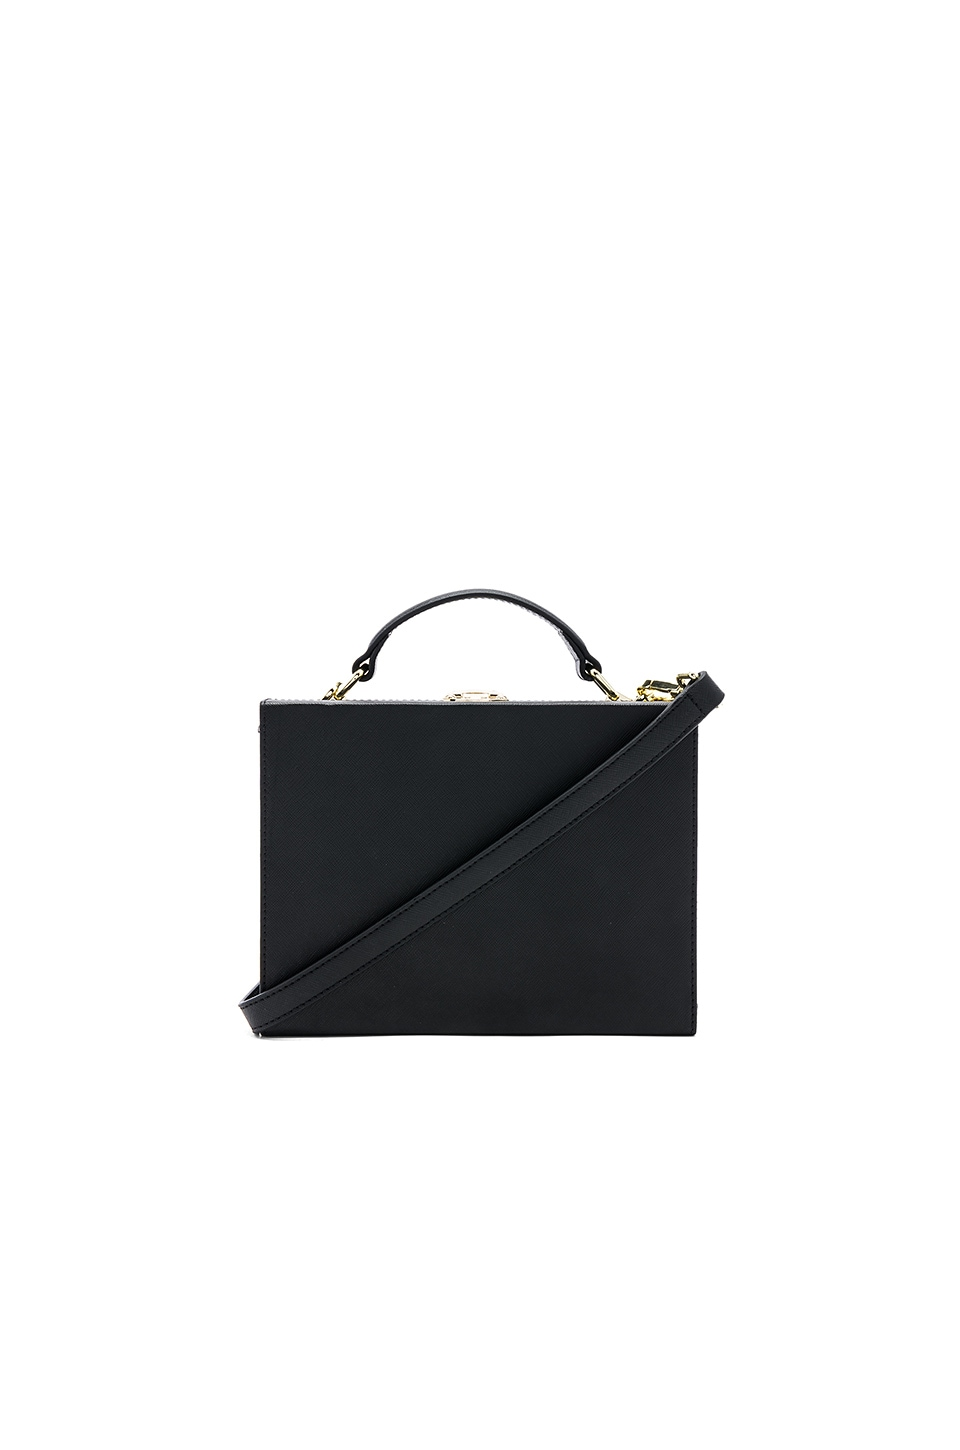 the daily edited Box Bag in Black